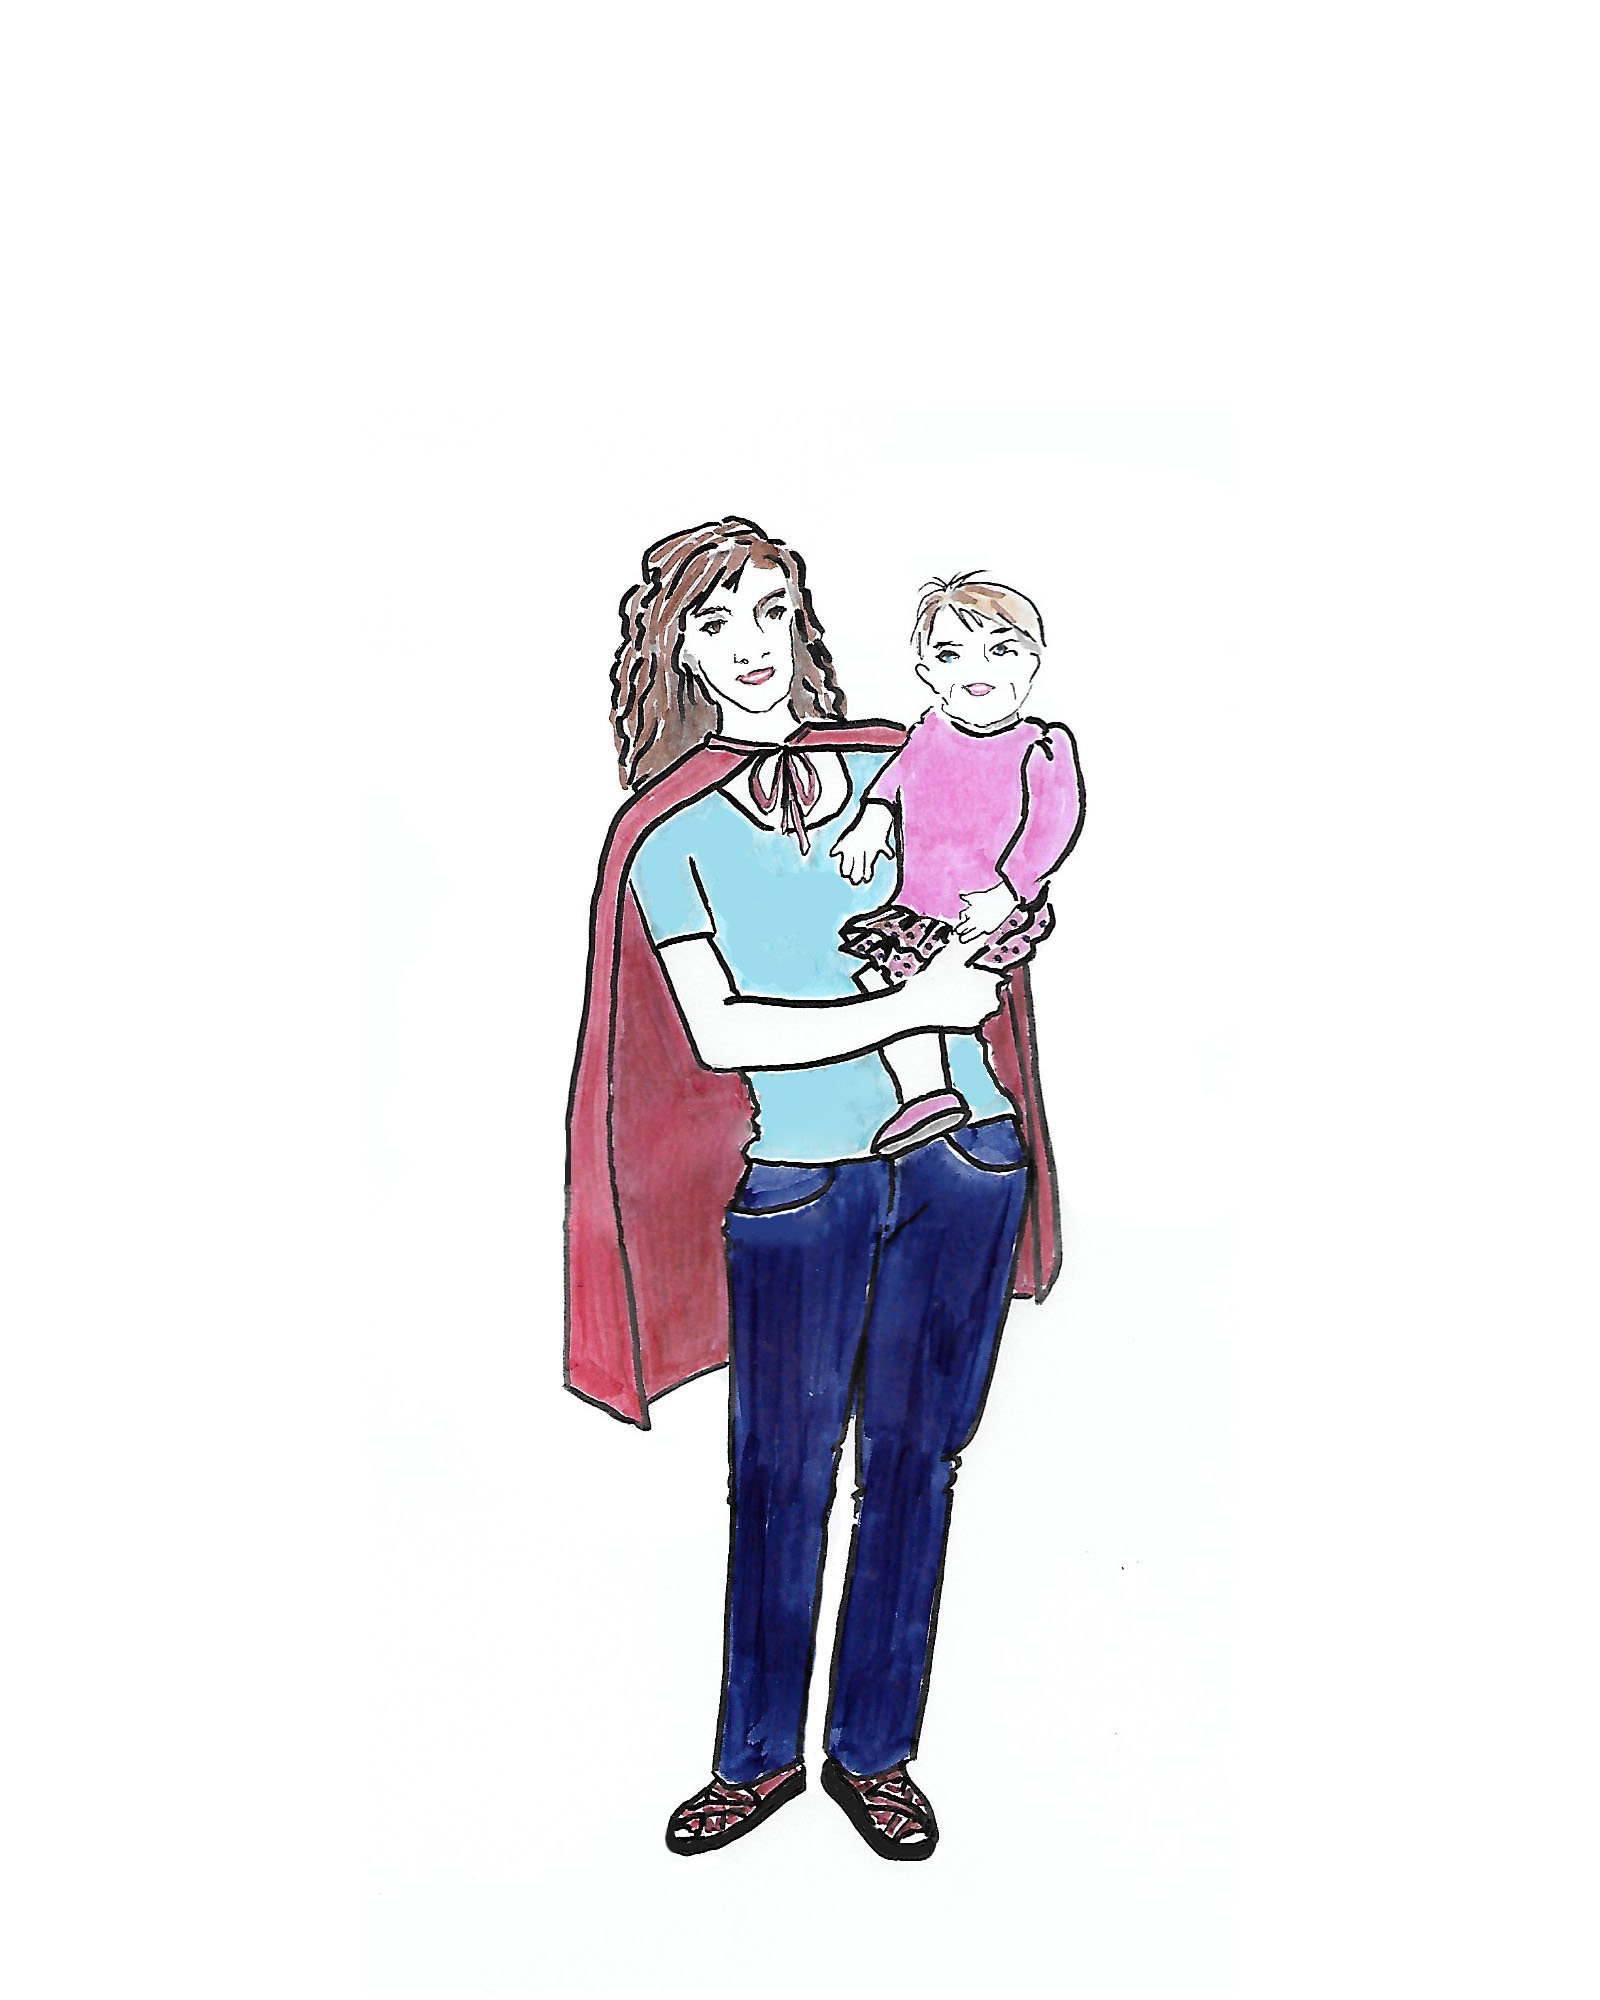 Should Supermom Wear a Cape?